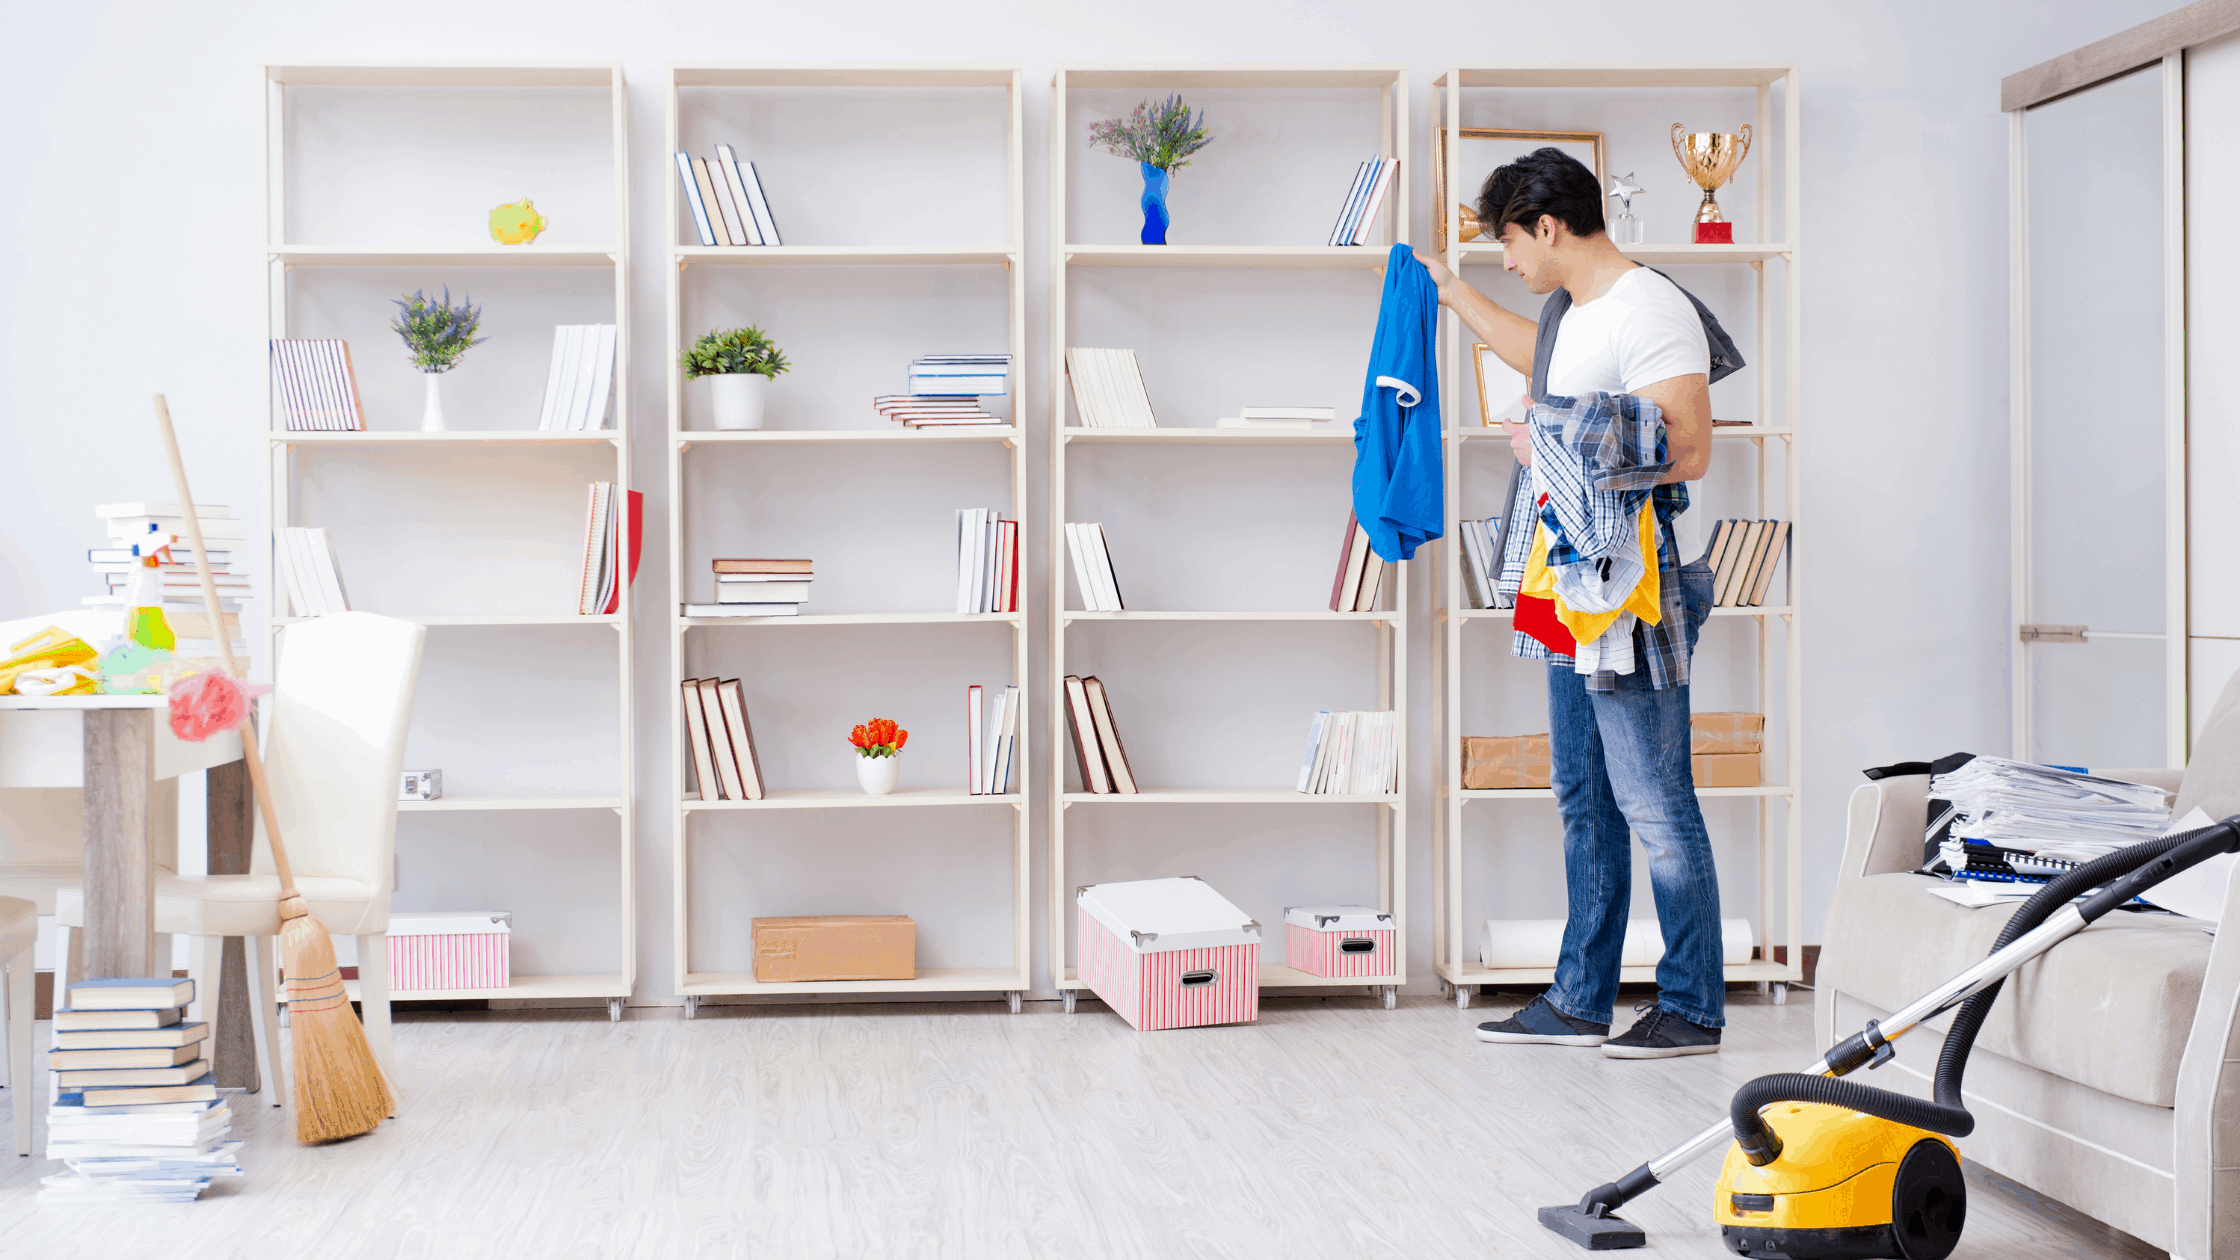 How to Declutter your Home | 5 Questions to Ask when Clearing Clutter